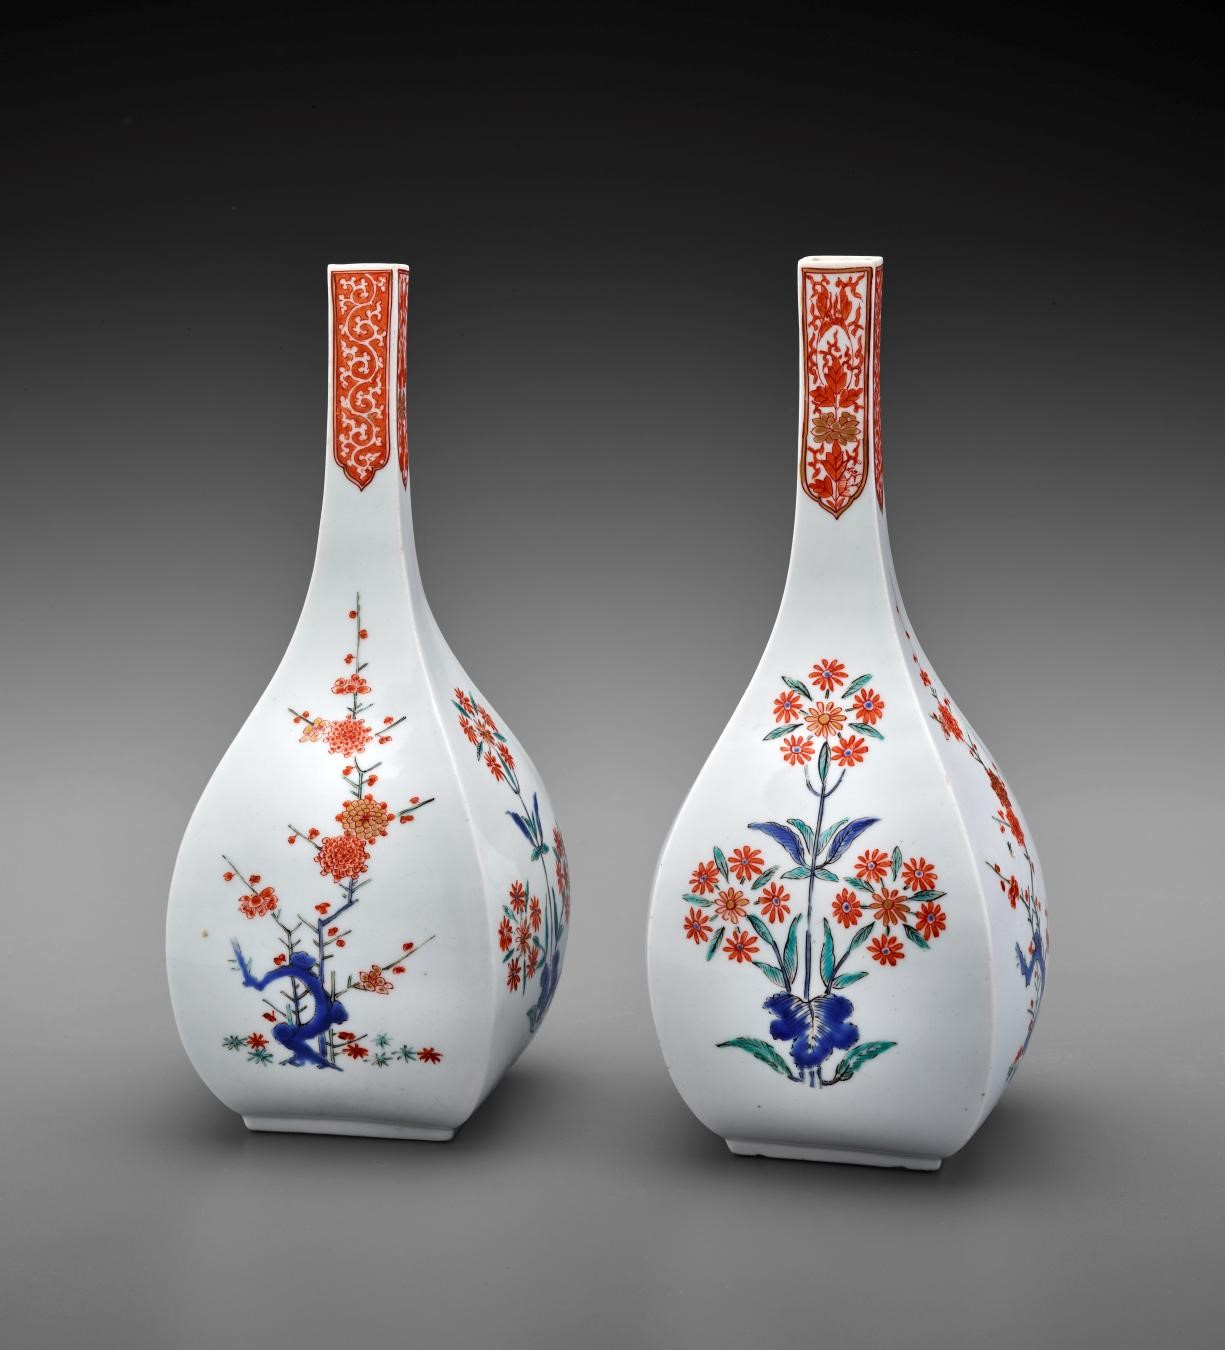 Japanese, Squared Wine Bottles with Design of Prunus and Flowering Plants, 1670–90